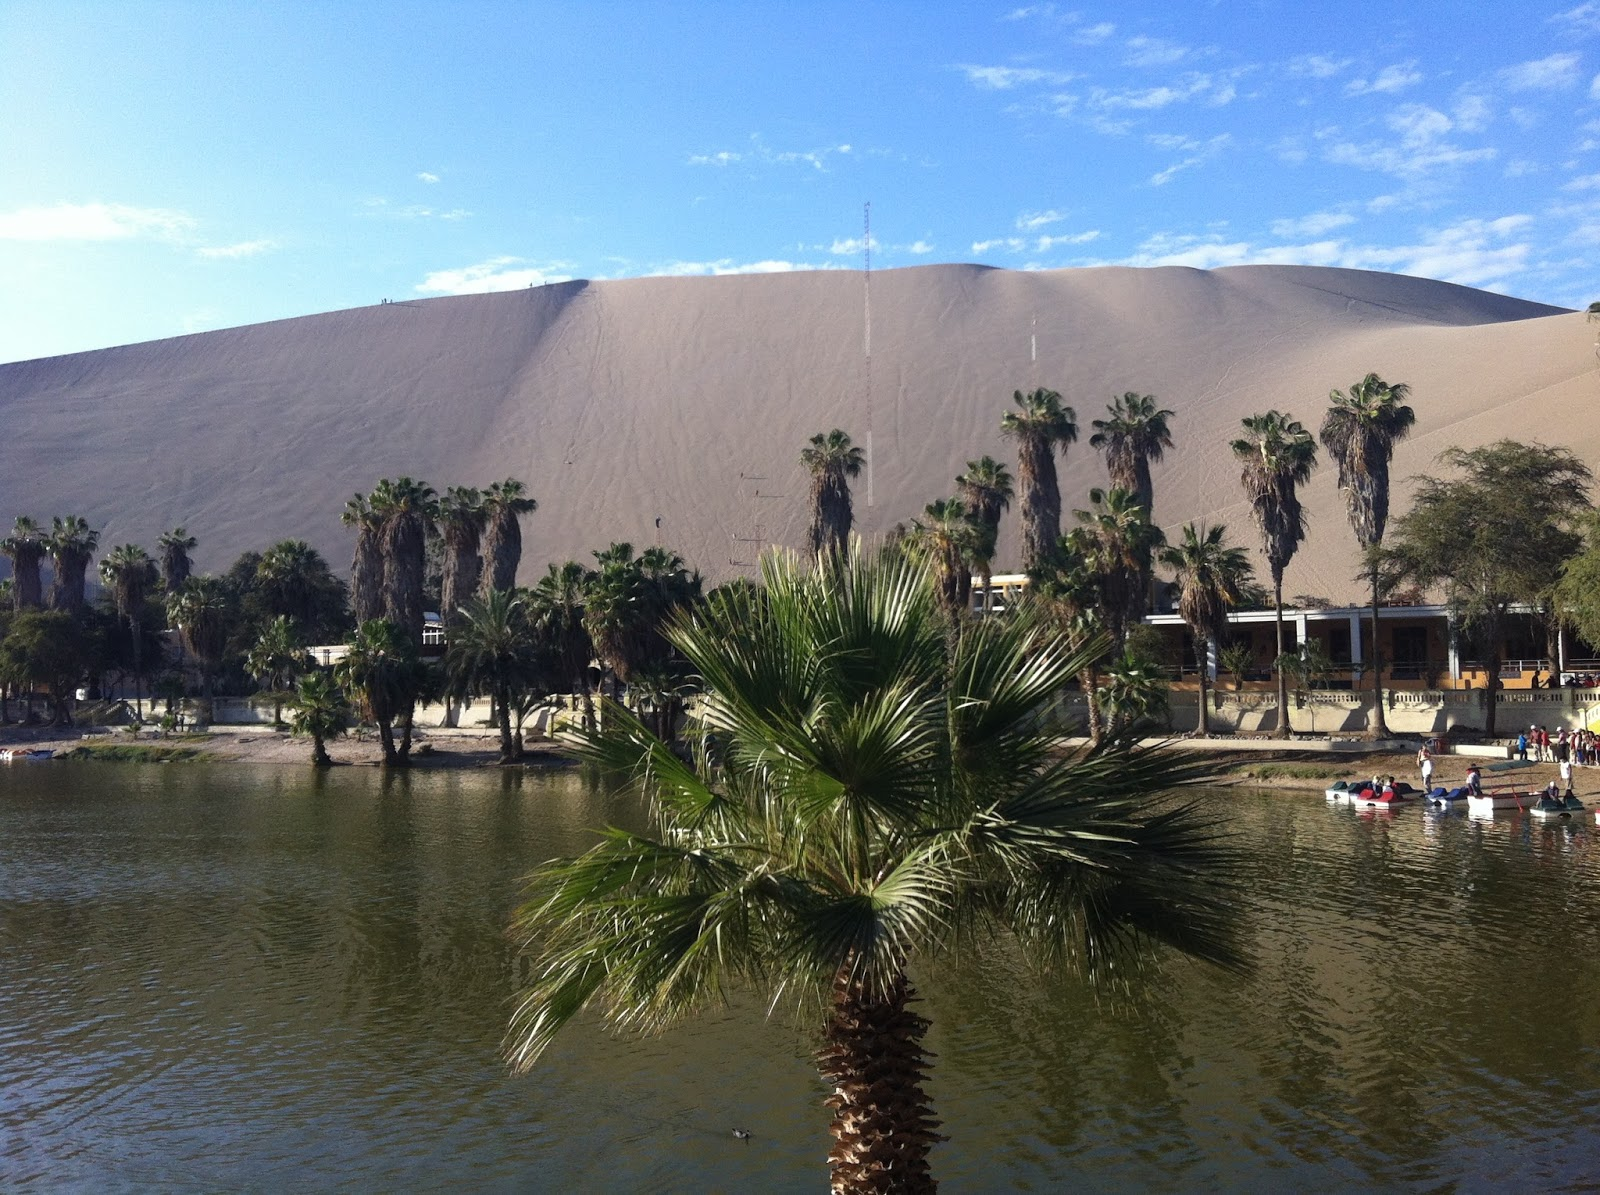 Oasis in Huacachina Peru